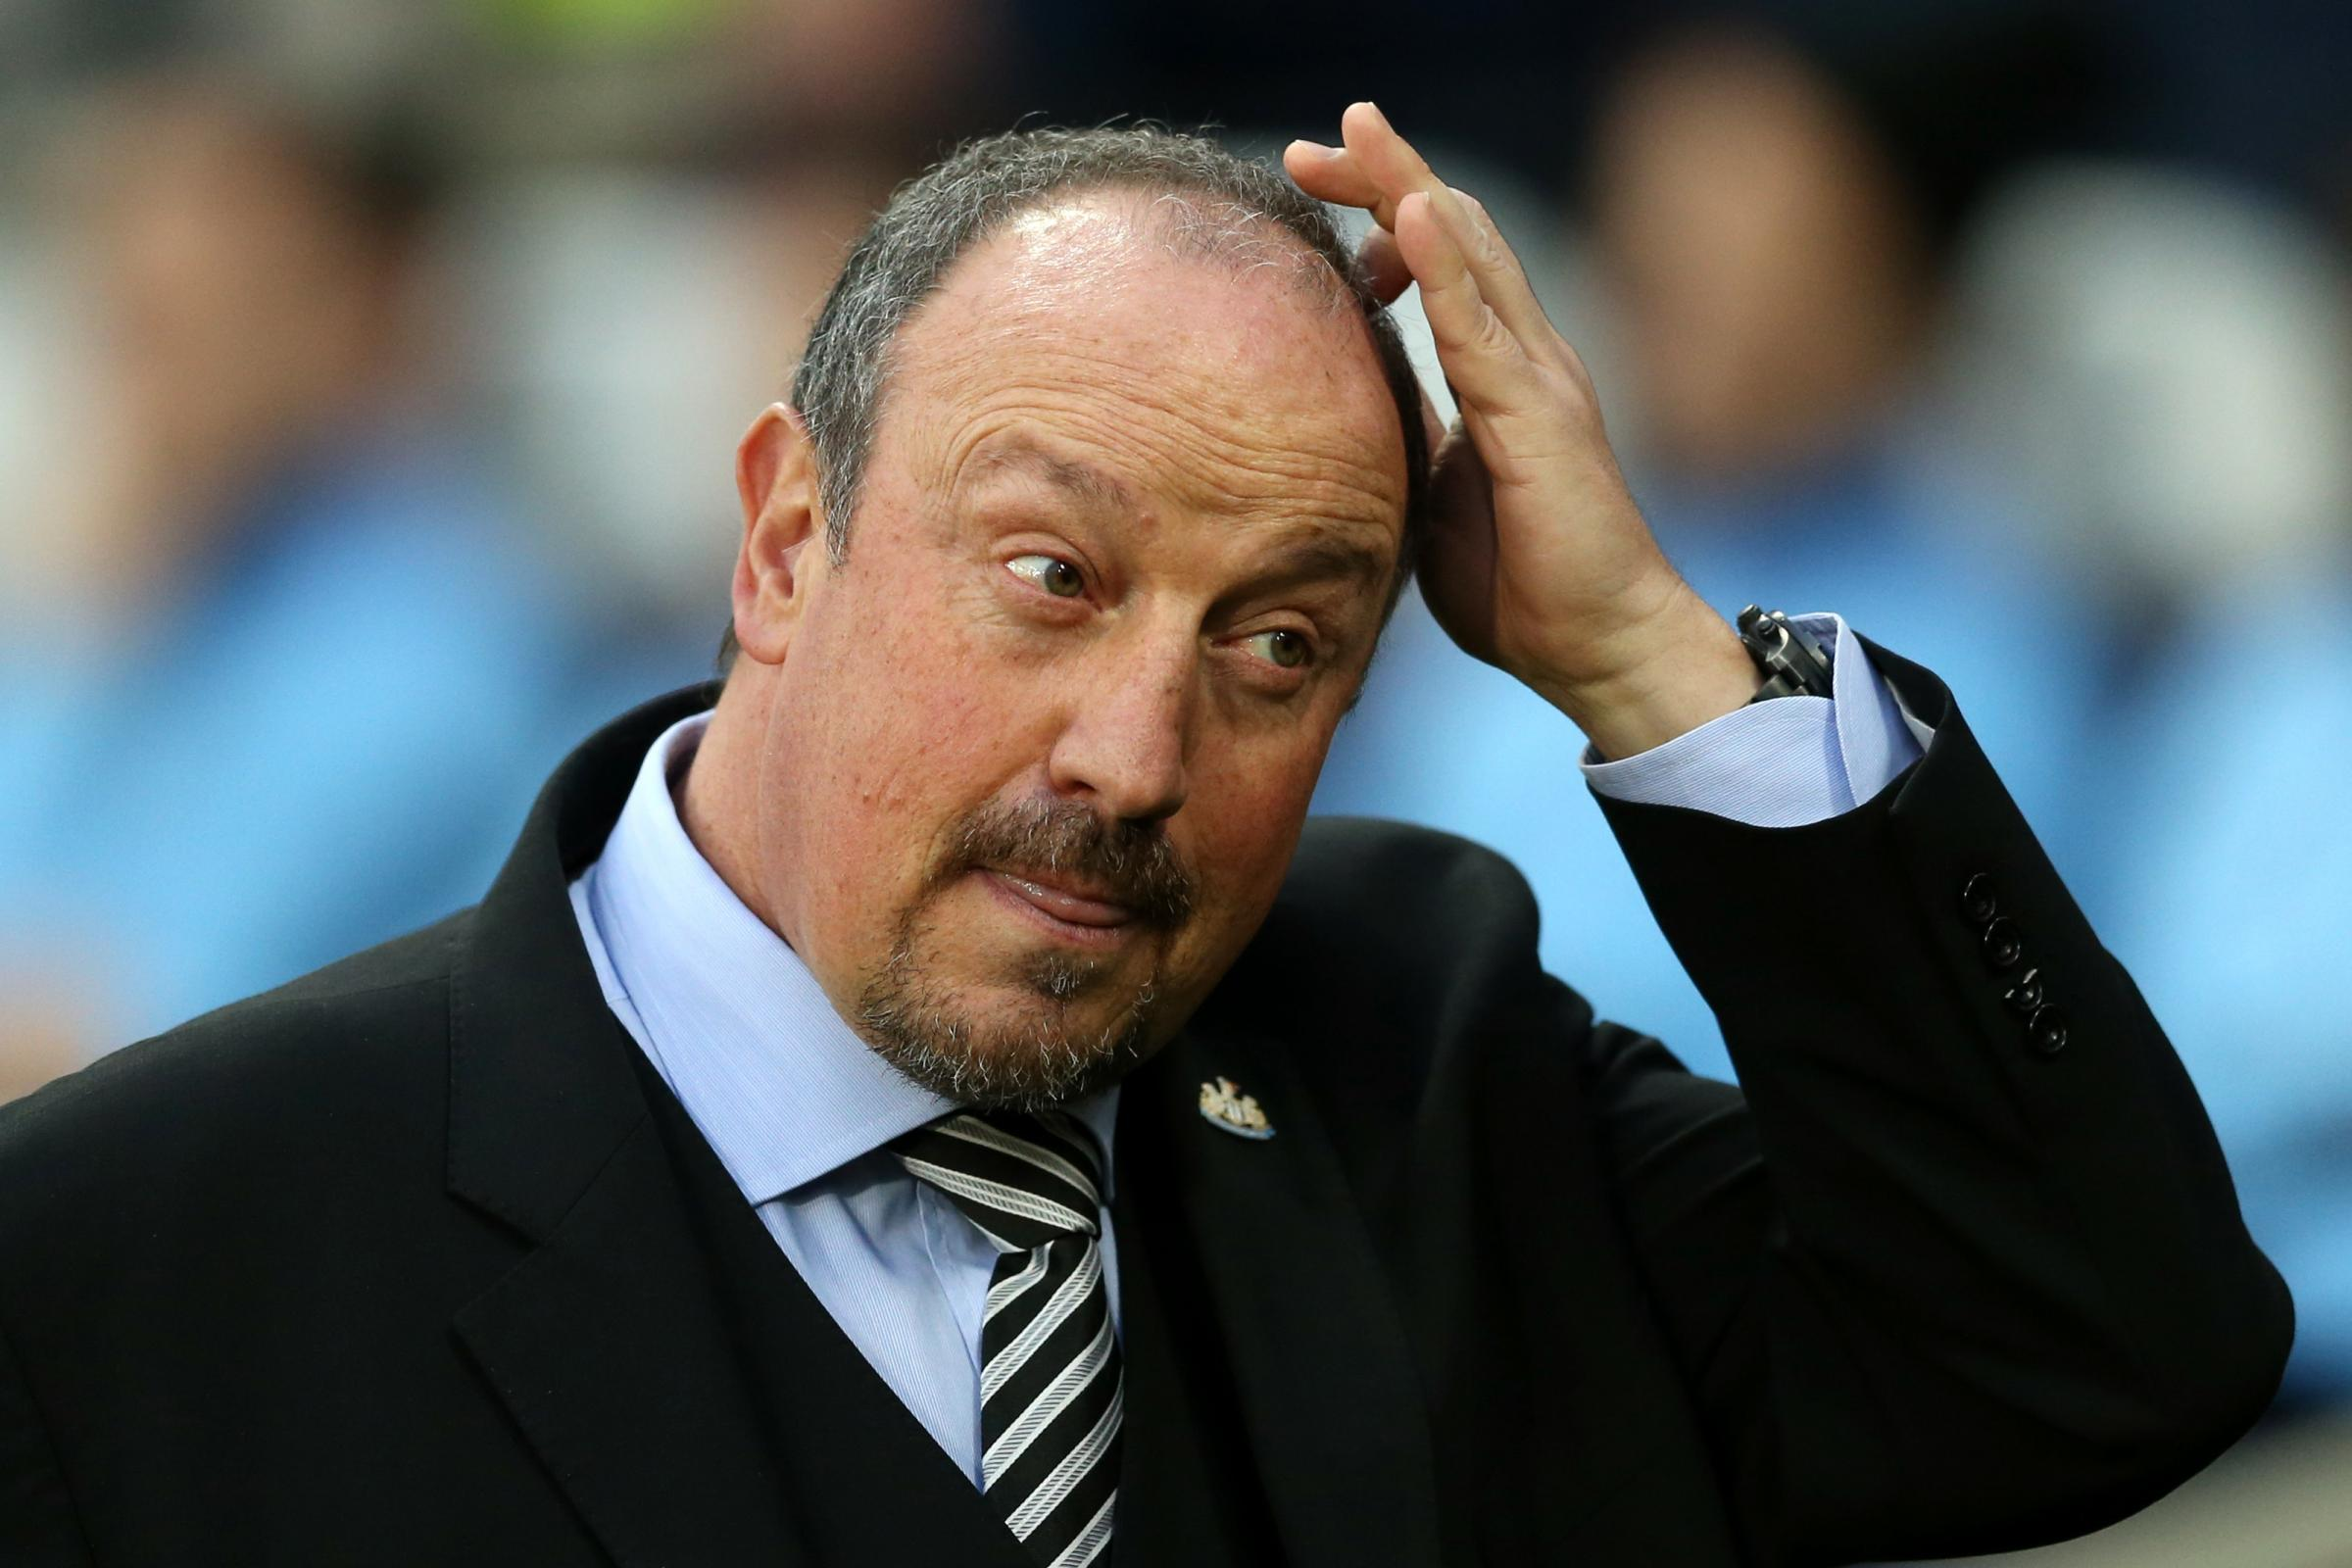 Newcastle United: Benitez unable to make decisions about players' futures